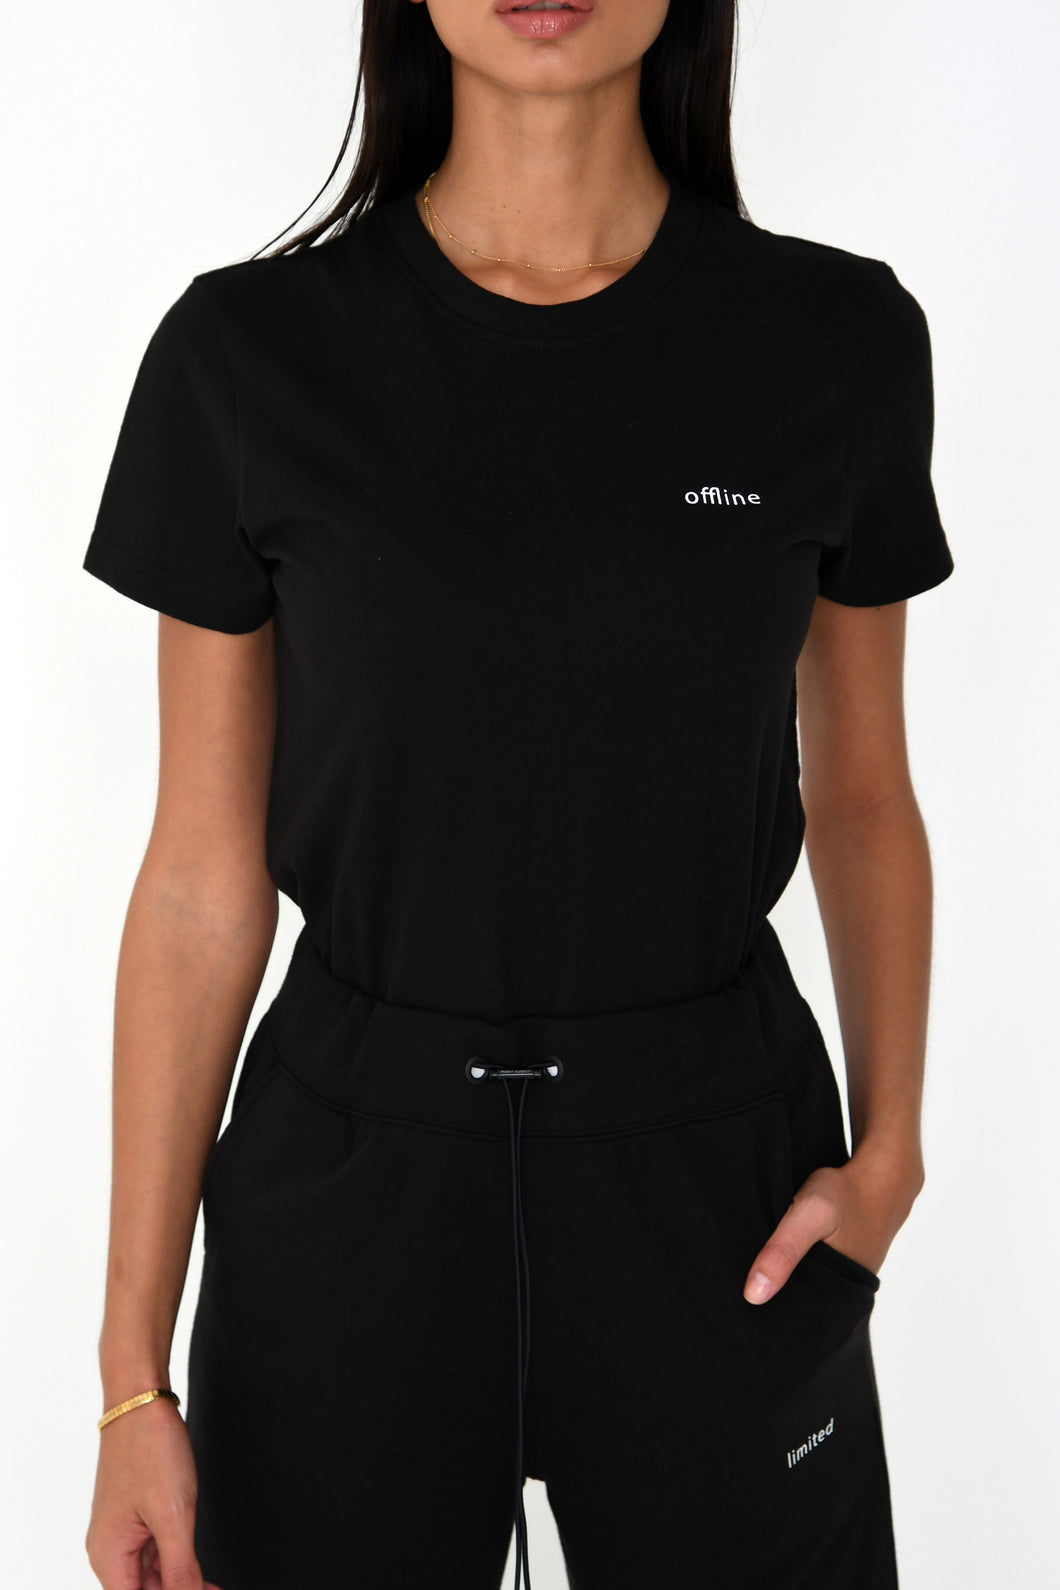 NIGHT ADDICT WOMENS BLACK FITTED 'OFFLINE' TEE FRONT